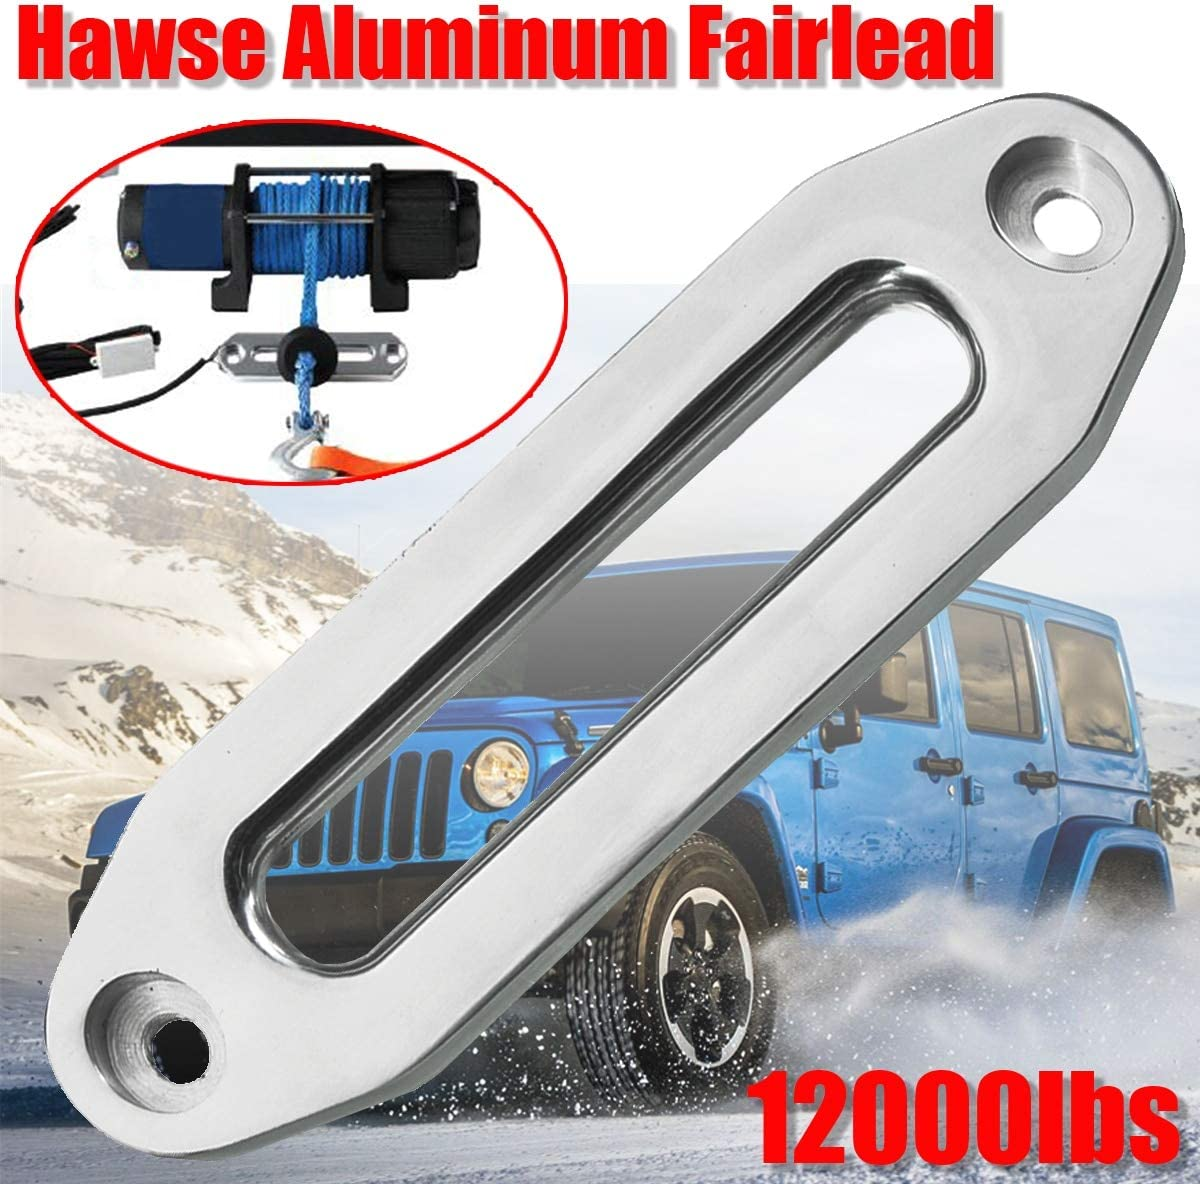 Hot 12000lbs Polished Winch Rope Guide Hawse Aluminum Fairlead For Off-Road 4WD